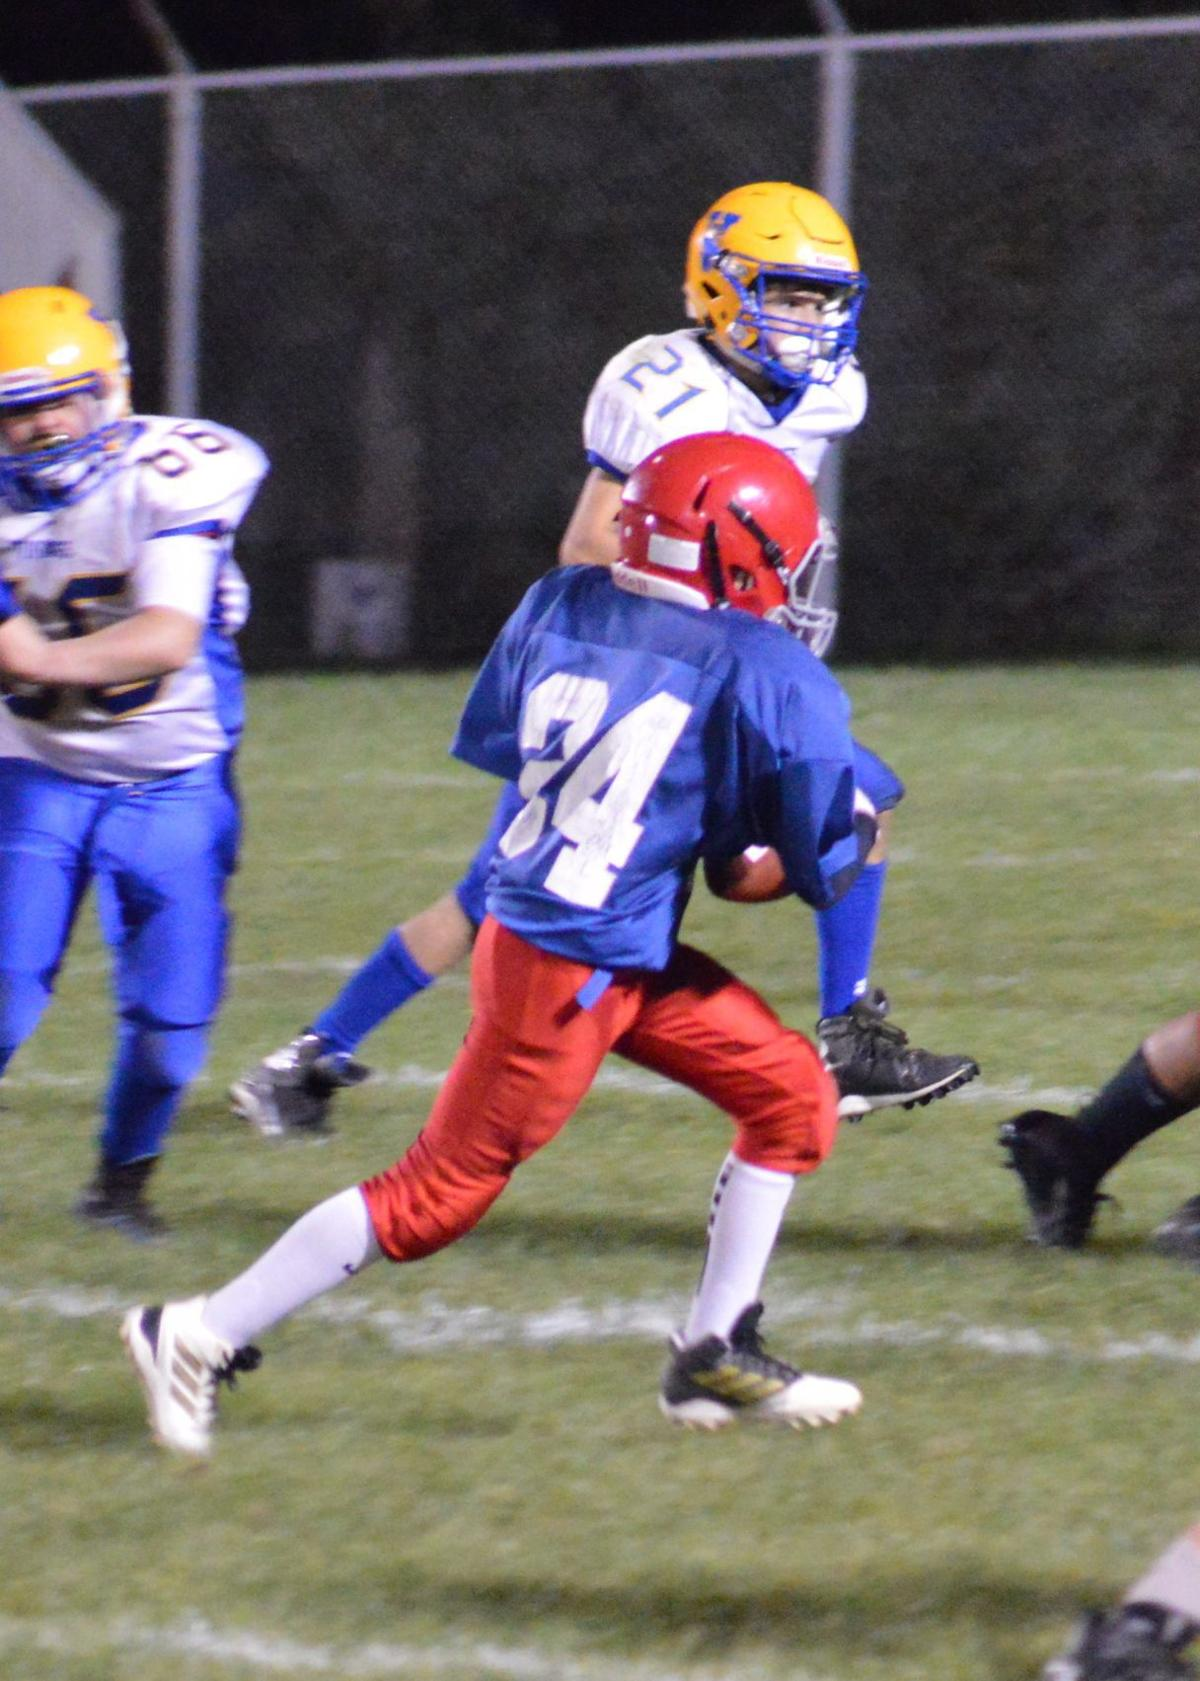 Logan Liptak West Branch football